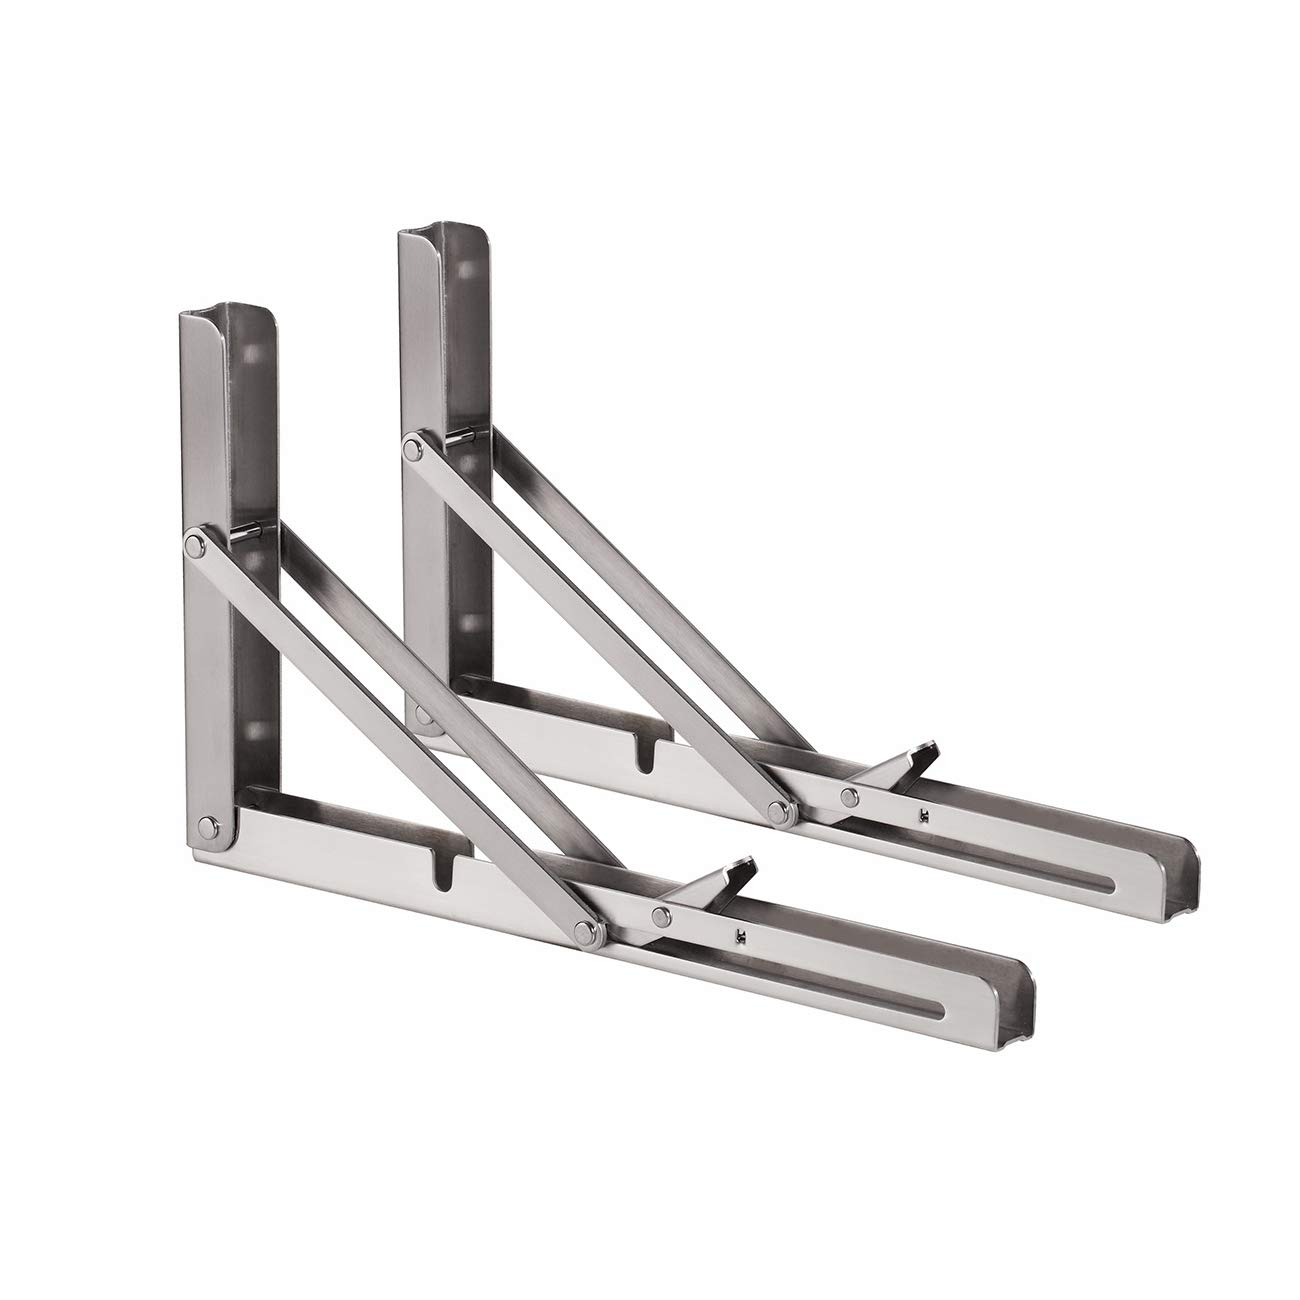 "YUMORE Folding Shelf Bracket, Heavy Duty Stainless Steel Collapsible Shelf Bracket for Table Bench, Space Saving DIY Bracket, Max Load: 330lb 12"" Pack of 2"